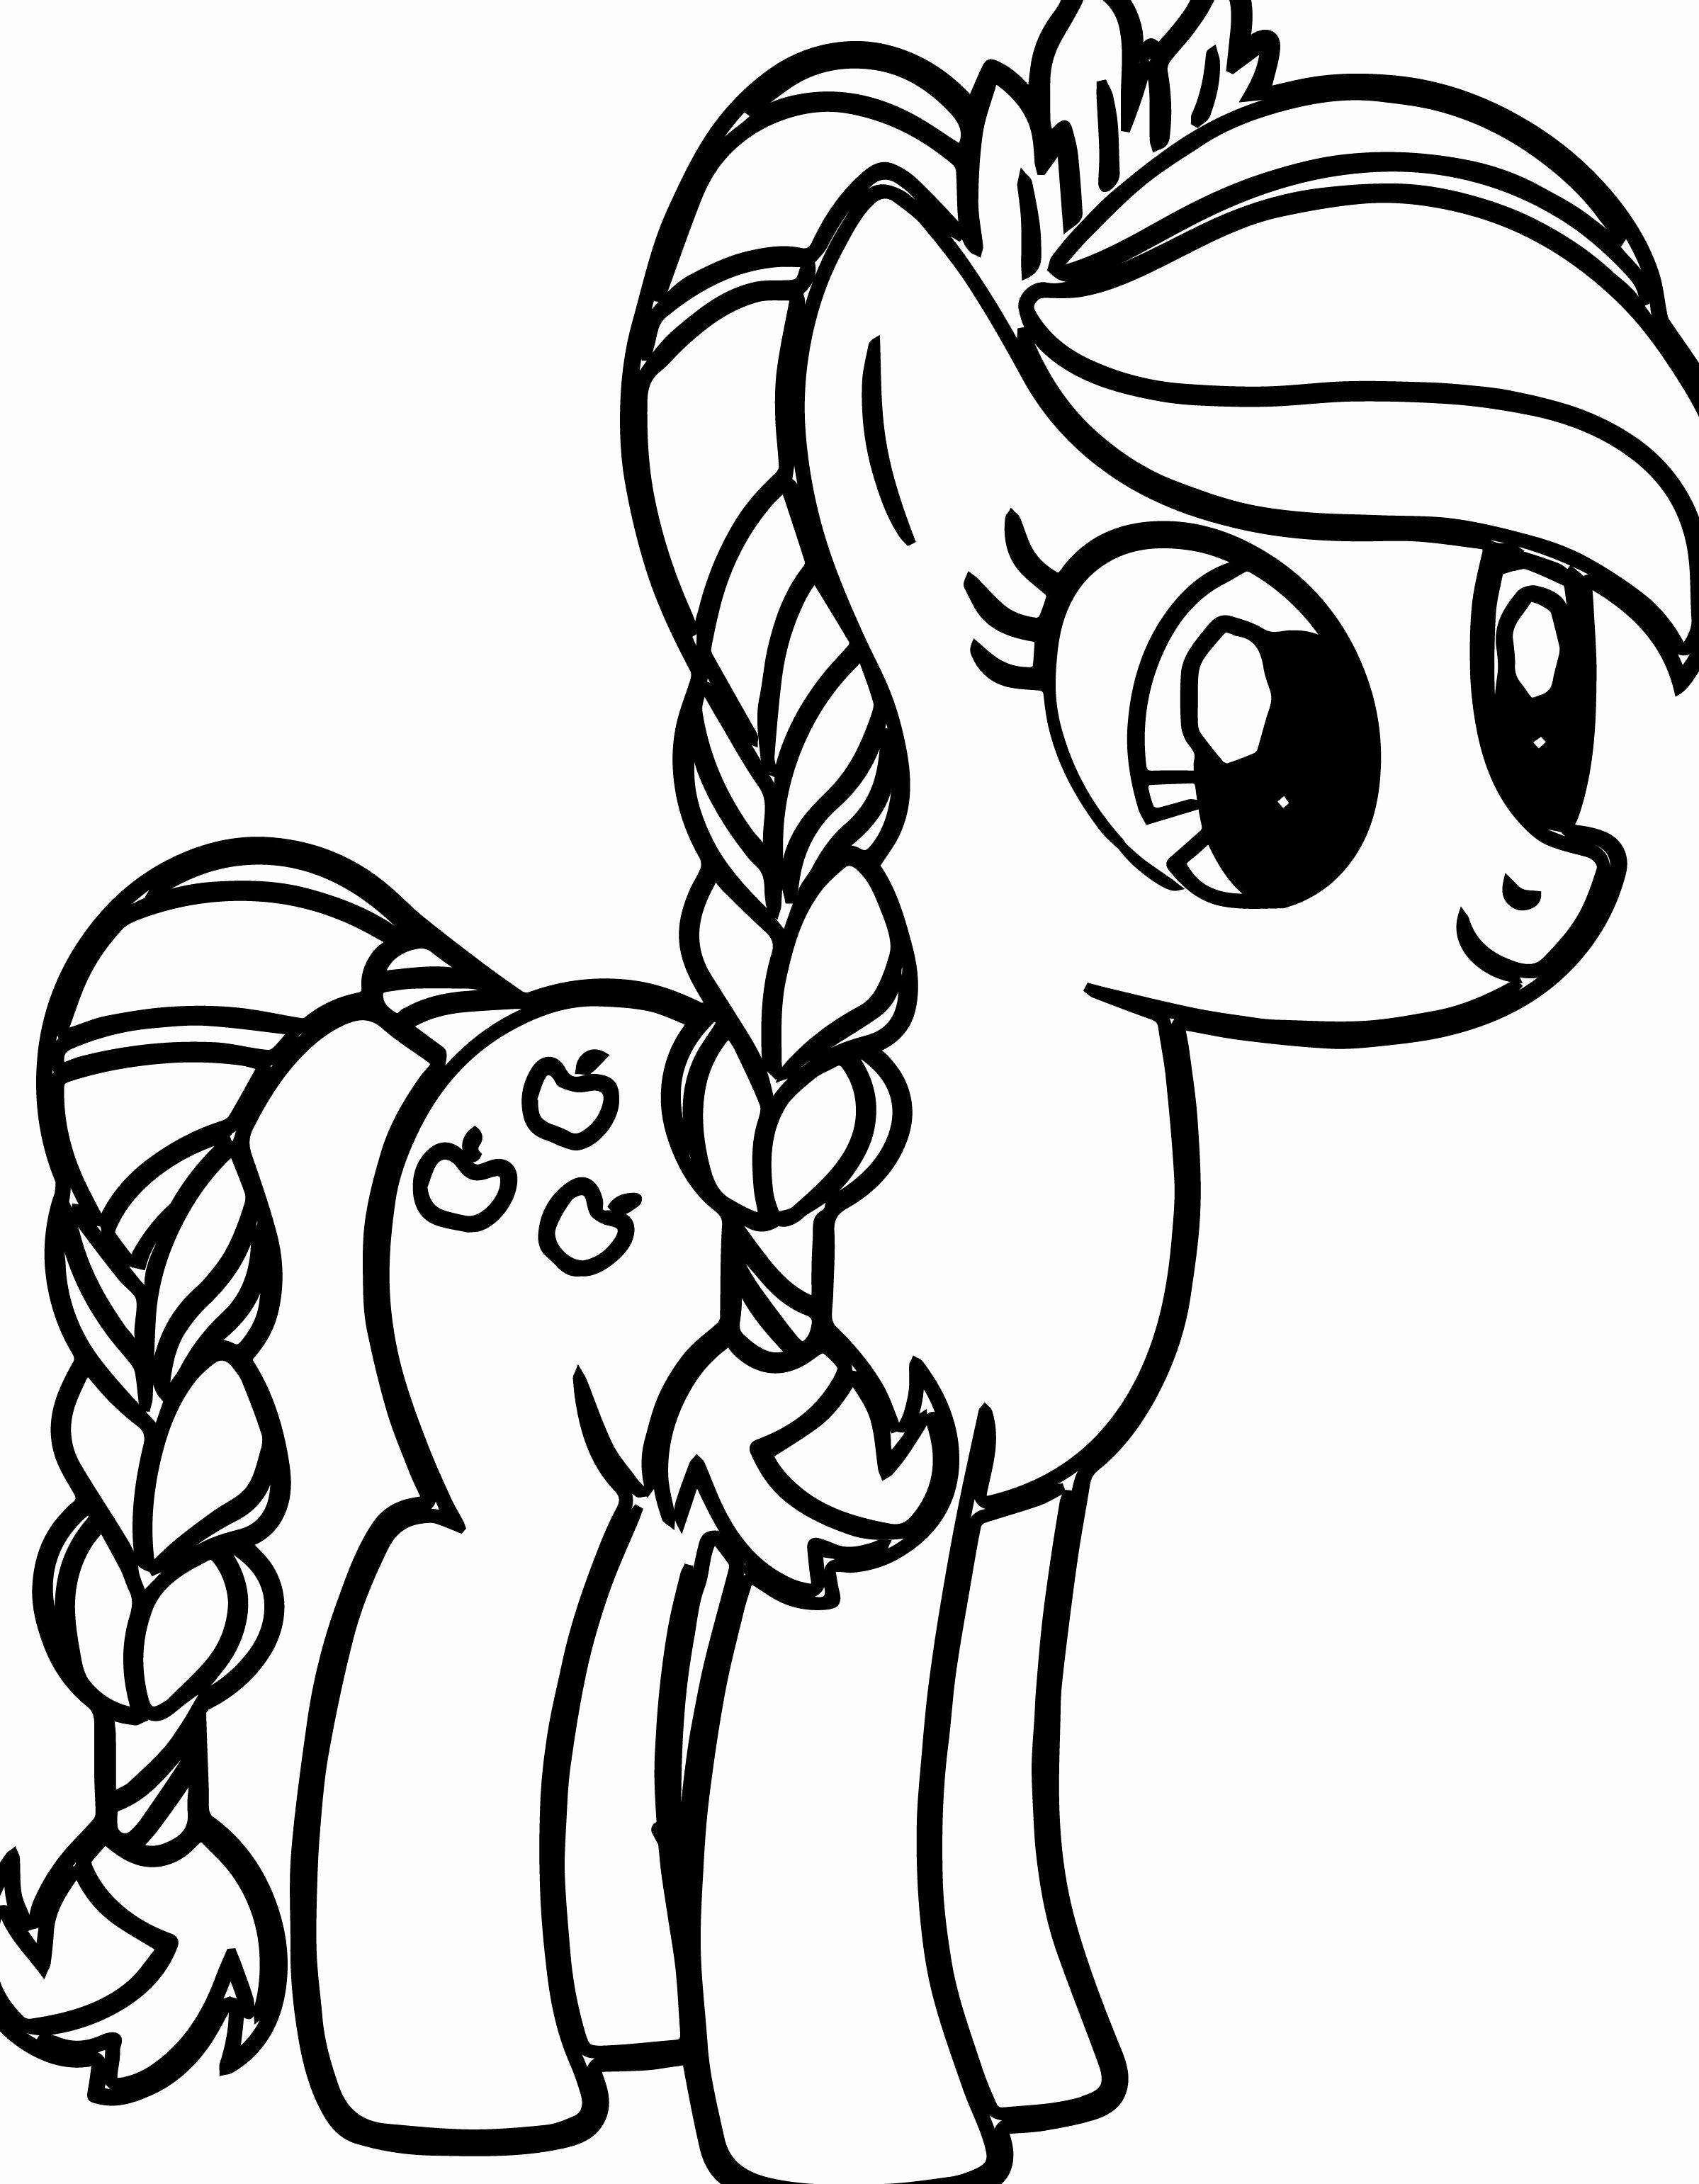 my little pony picters moongazer adopted by myself mlp pony my little pony little my picters pony